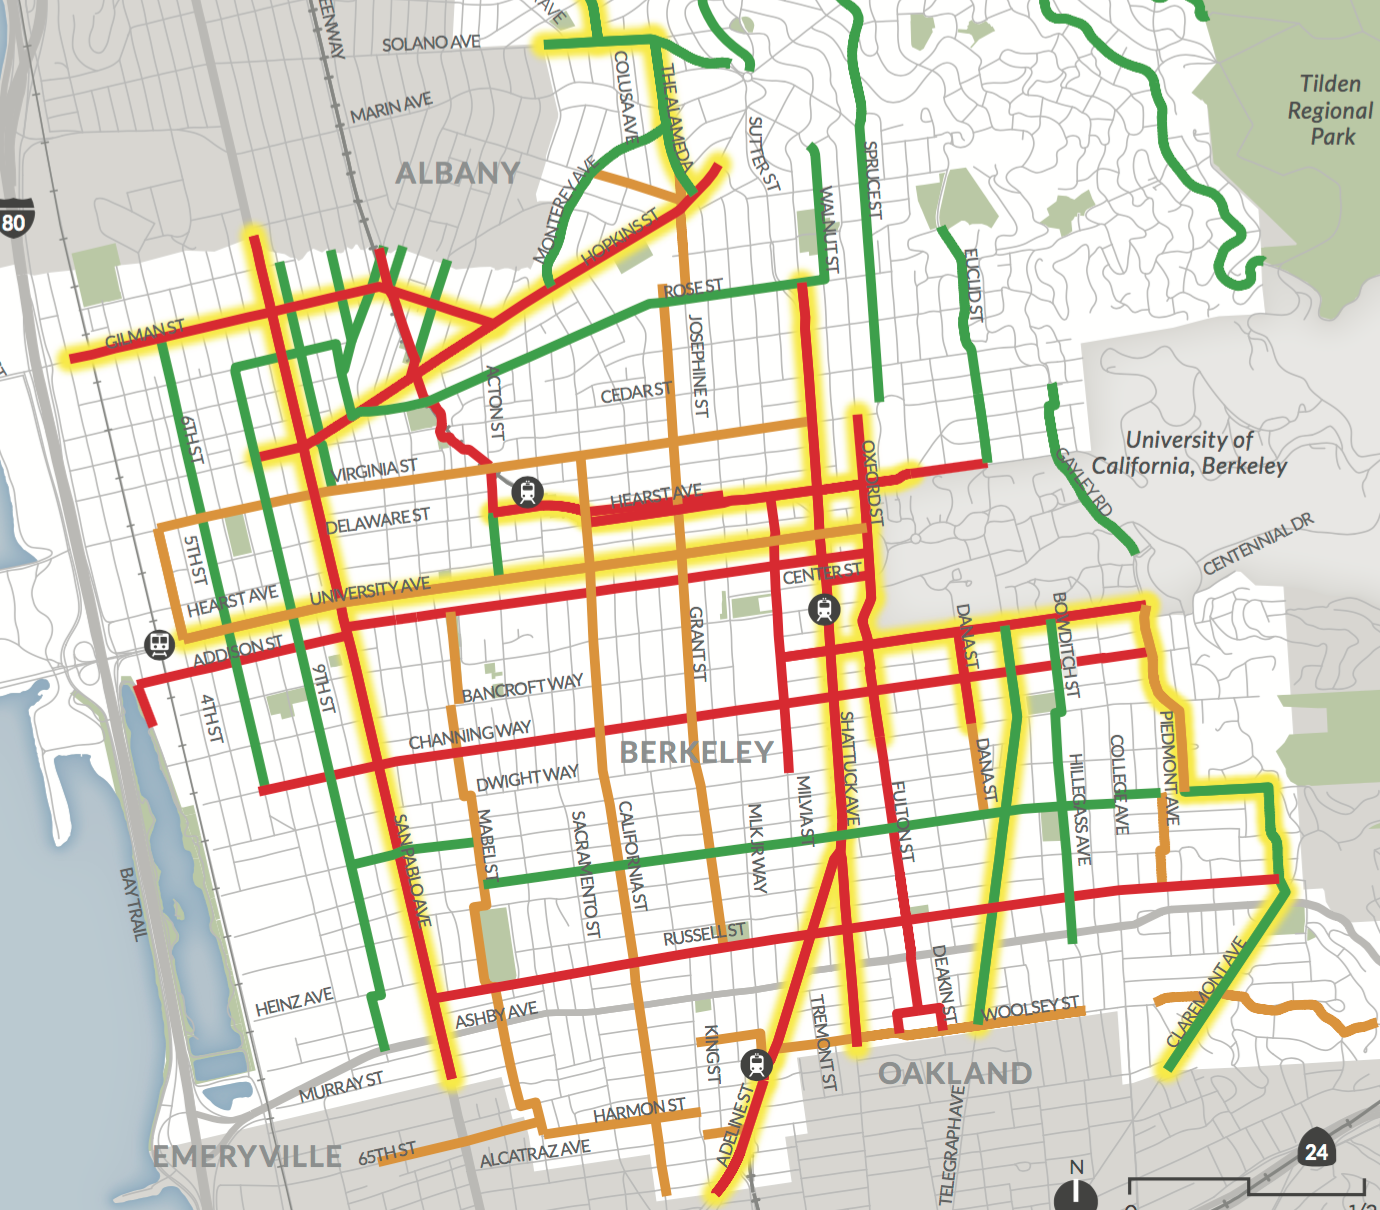 Berkeley Bike Plan Back On for May 2 Bike East Bay